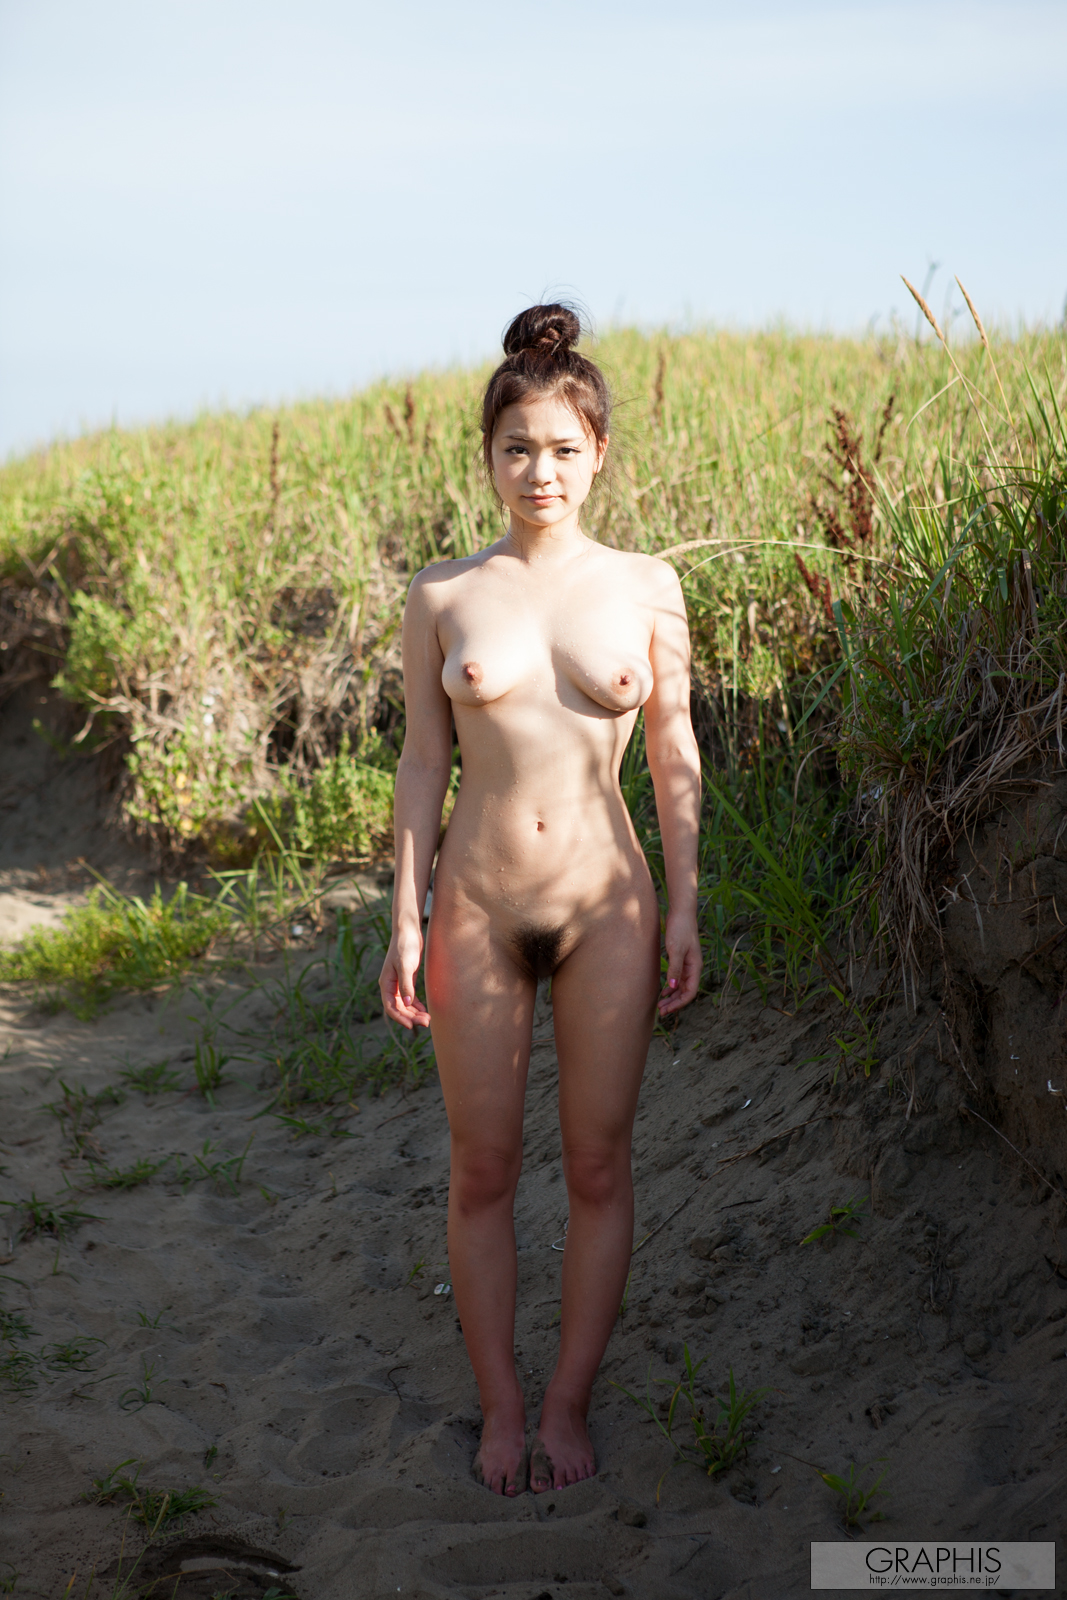 kana-tsuruta-nude-asian-graphis-14